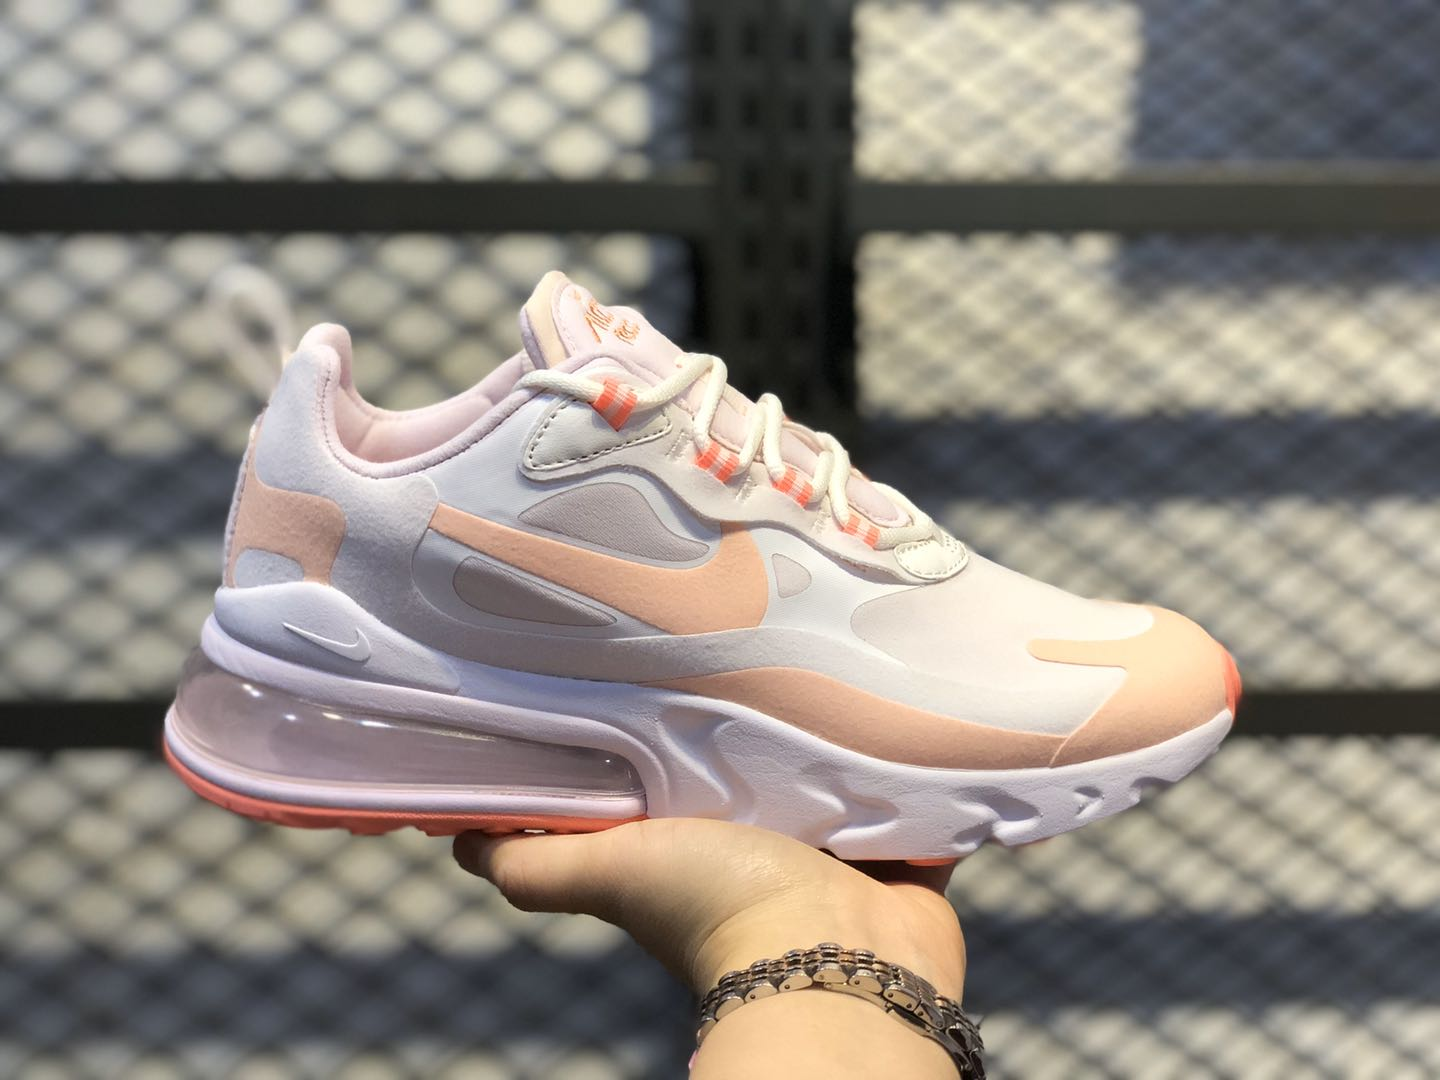 Nike Air Max 270 React Summit White/Crimson Tint/Light Violet CJ0619-103